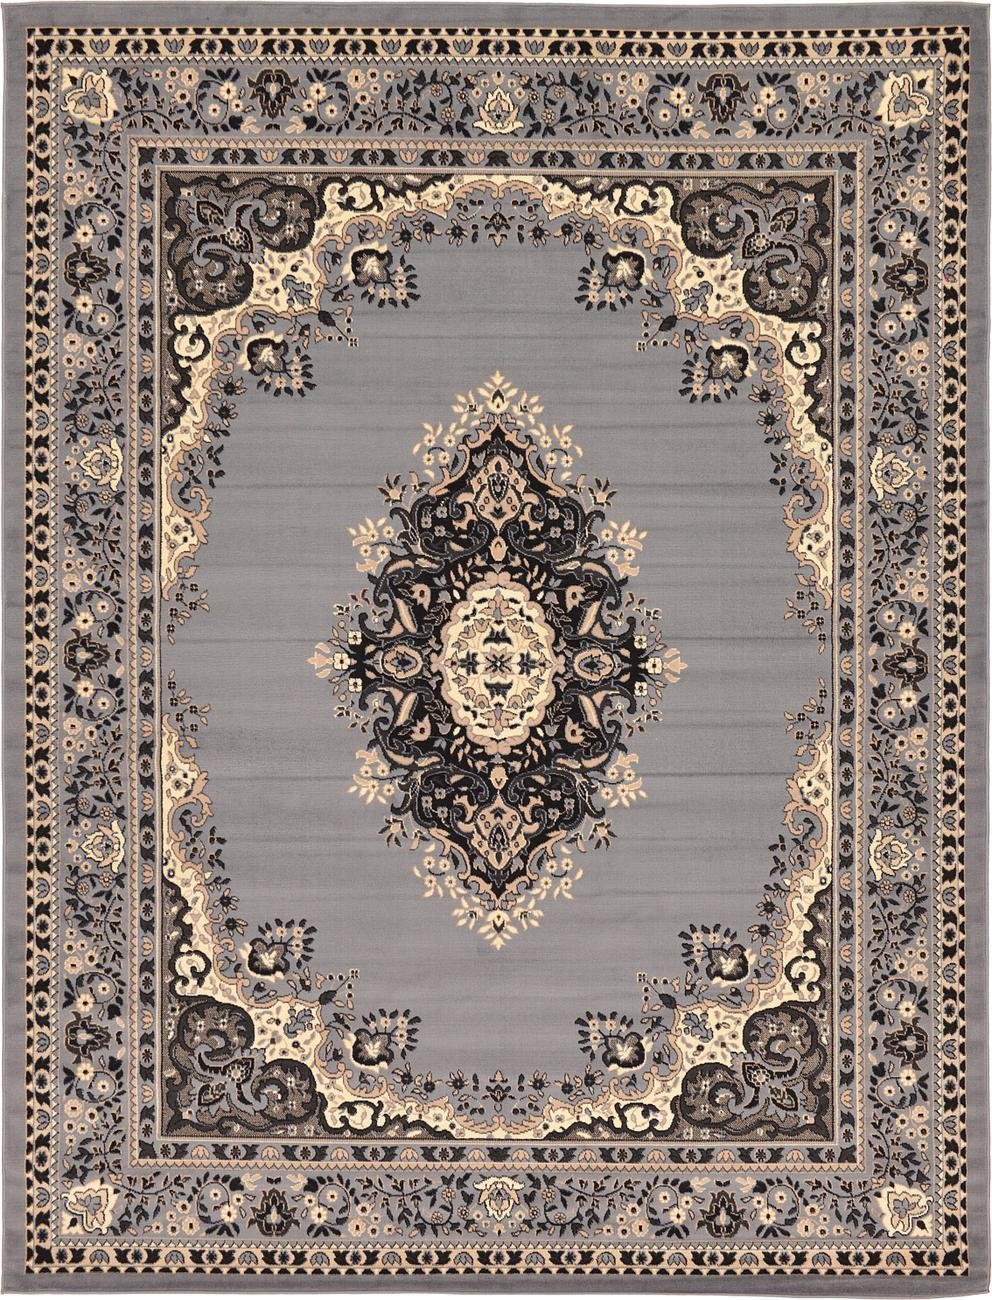 SPRING SALE LIQUIDATION CLEARANCE BARTER PERSIAN RUG CARPET